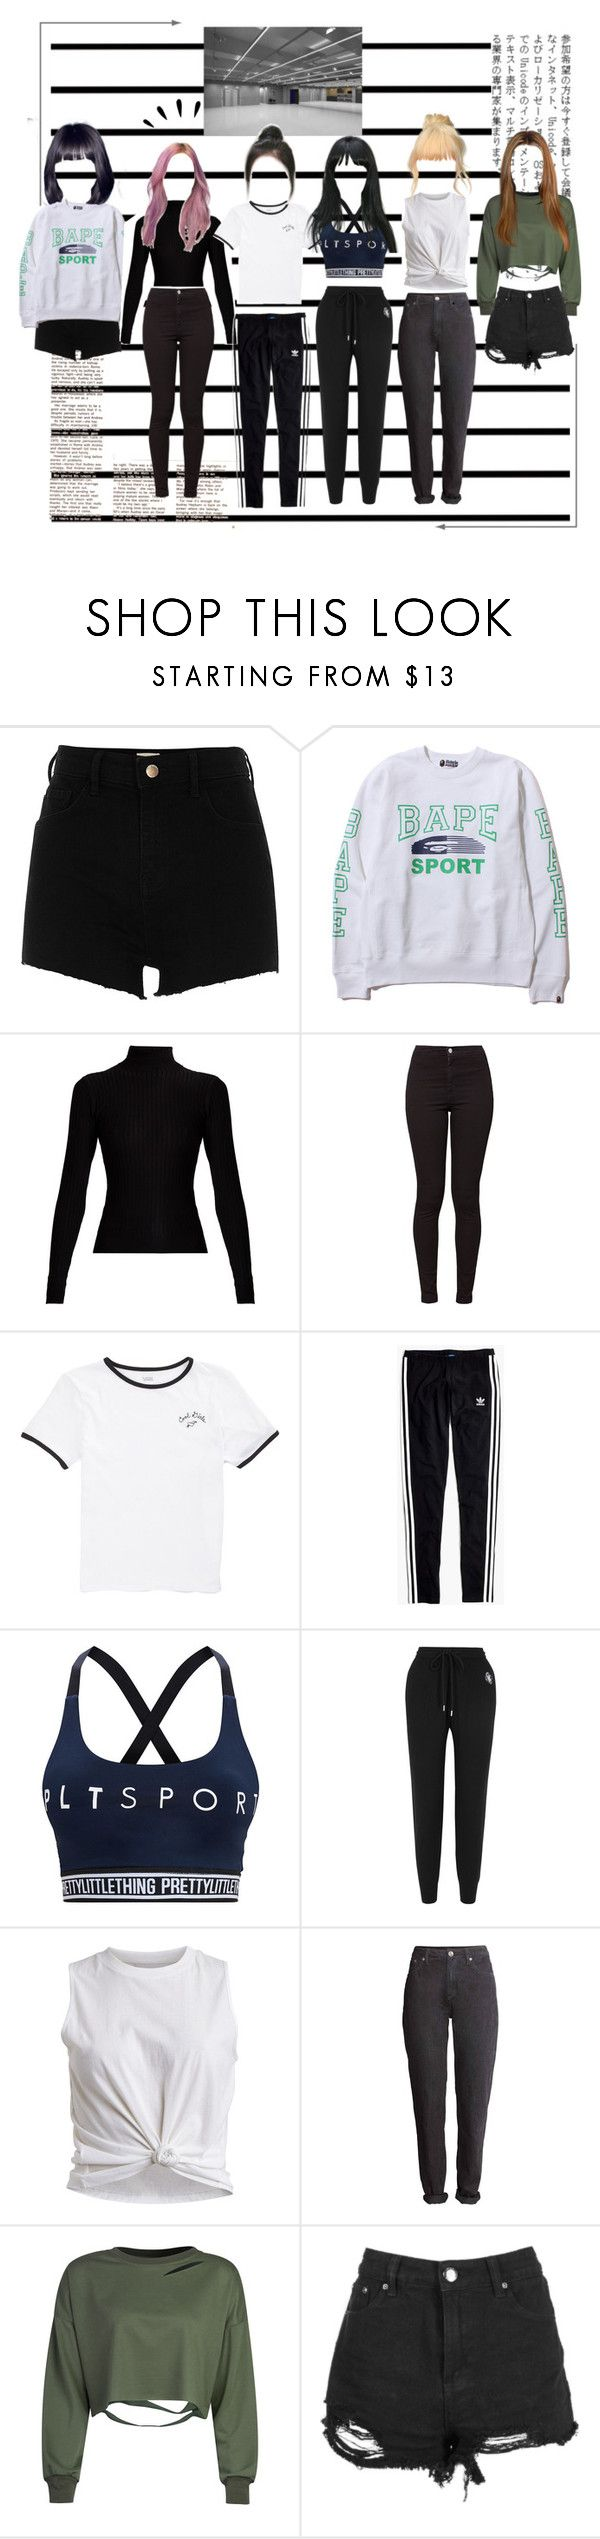 """""""RØULETTE (룰렛) Dance Practice"""" by rouletteofficial on Polyvore featuring Forum, River Island, A BATHING APE, Acne Studios, American Apparel, Vans, Madewell, Pretty Little Thing, Markus Lupfer e Vila Milano"""